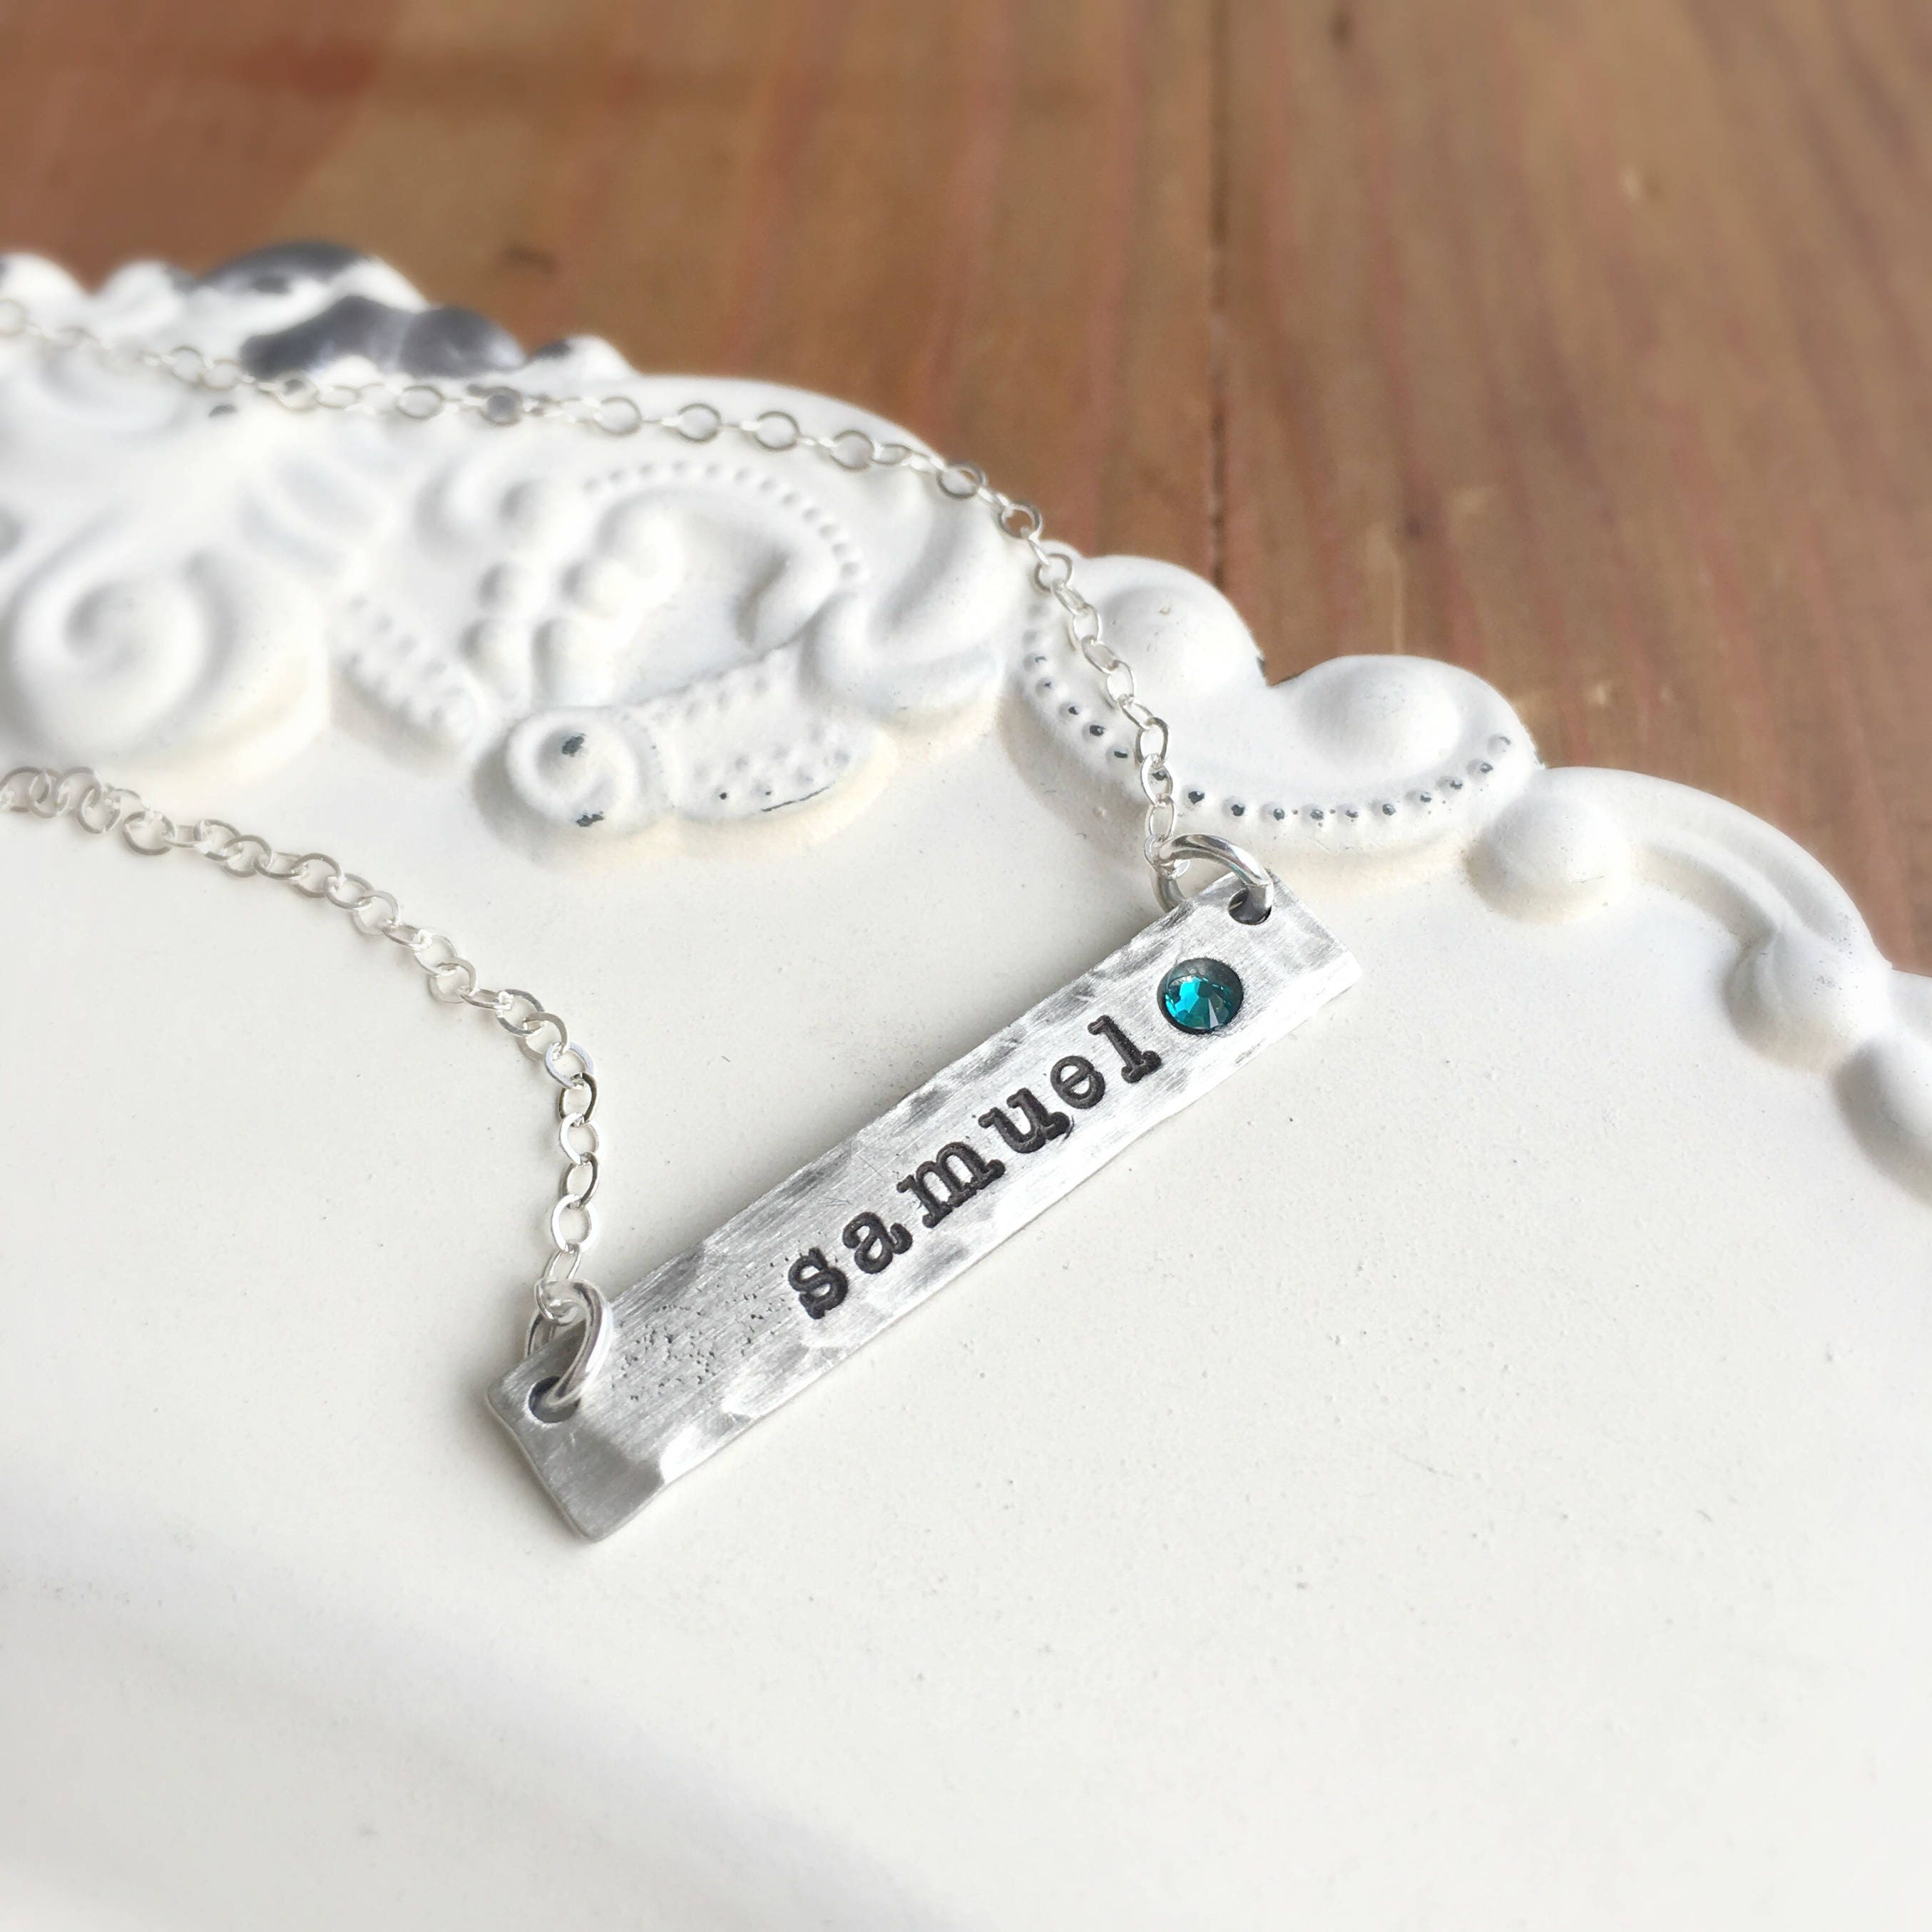 Moonglow Youtube: Classic Birthstone Necklace In Pewter